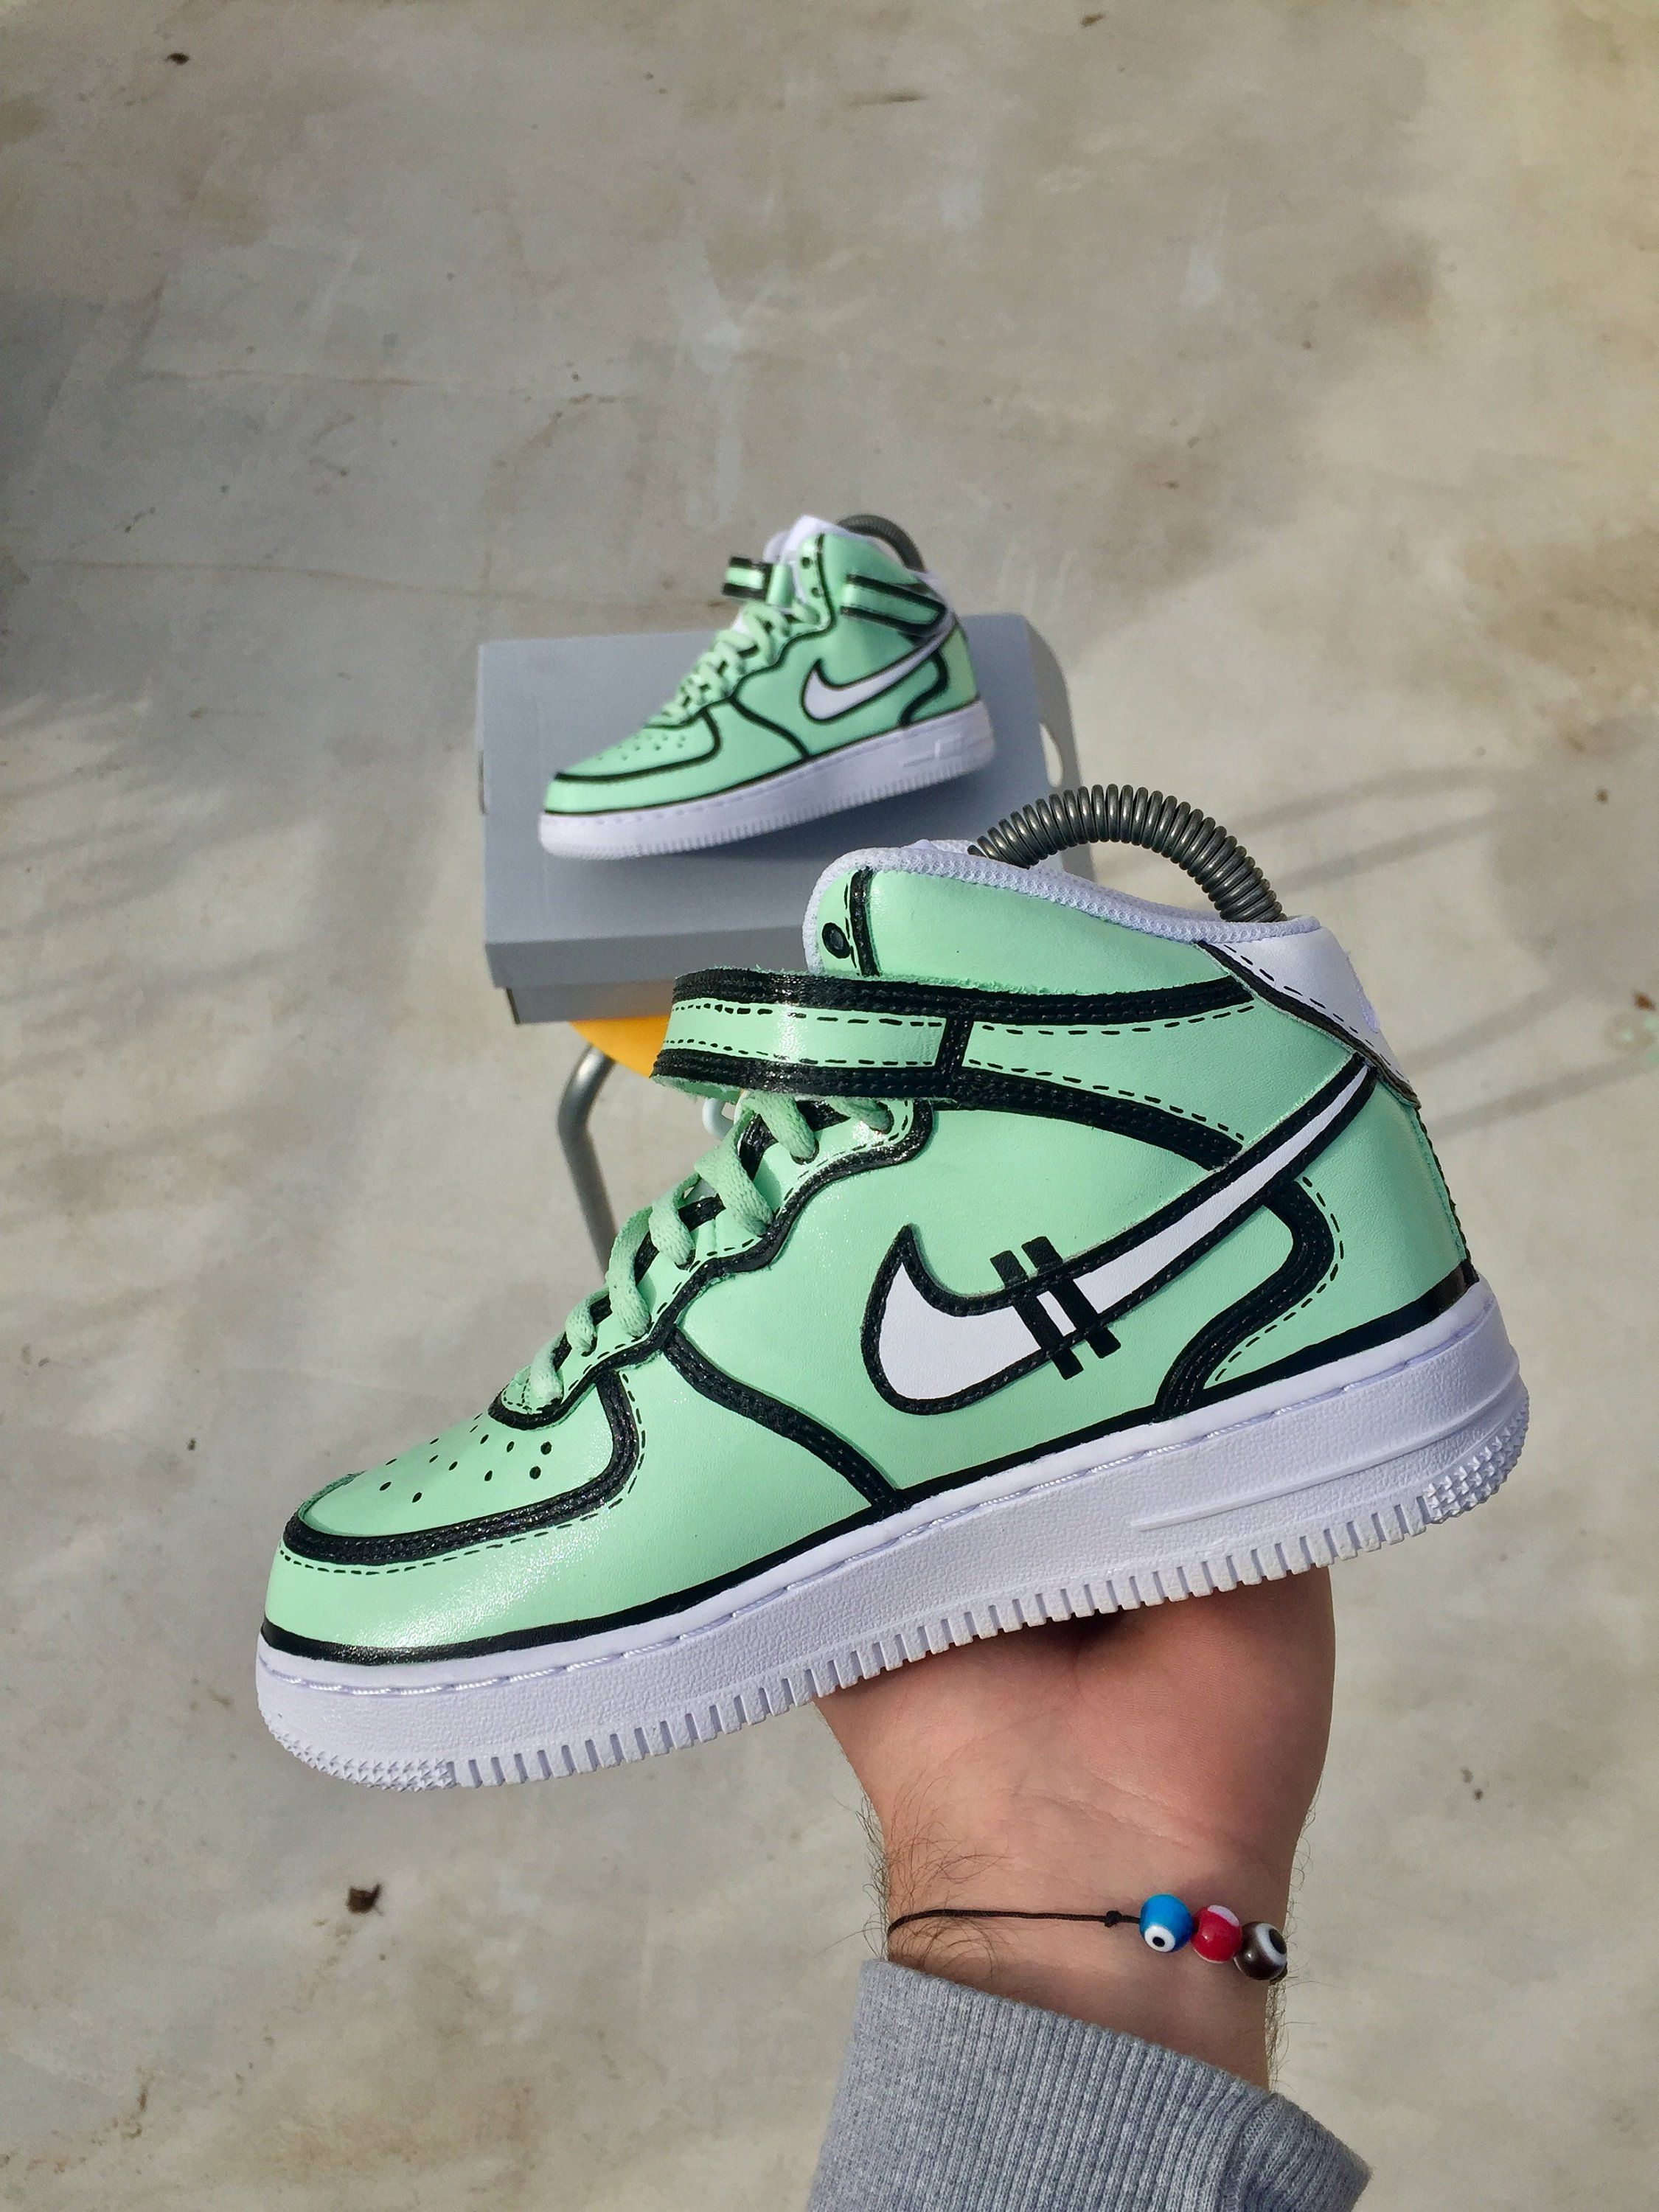 d10b40be4da Custom Nike - Nike Nike Air Force 1 Mint x Black Lines - Custom Shoes -  Hand painted - Personalized Custom Kicks - Design your own now!